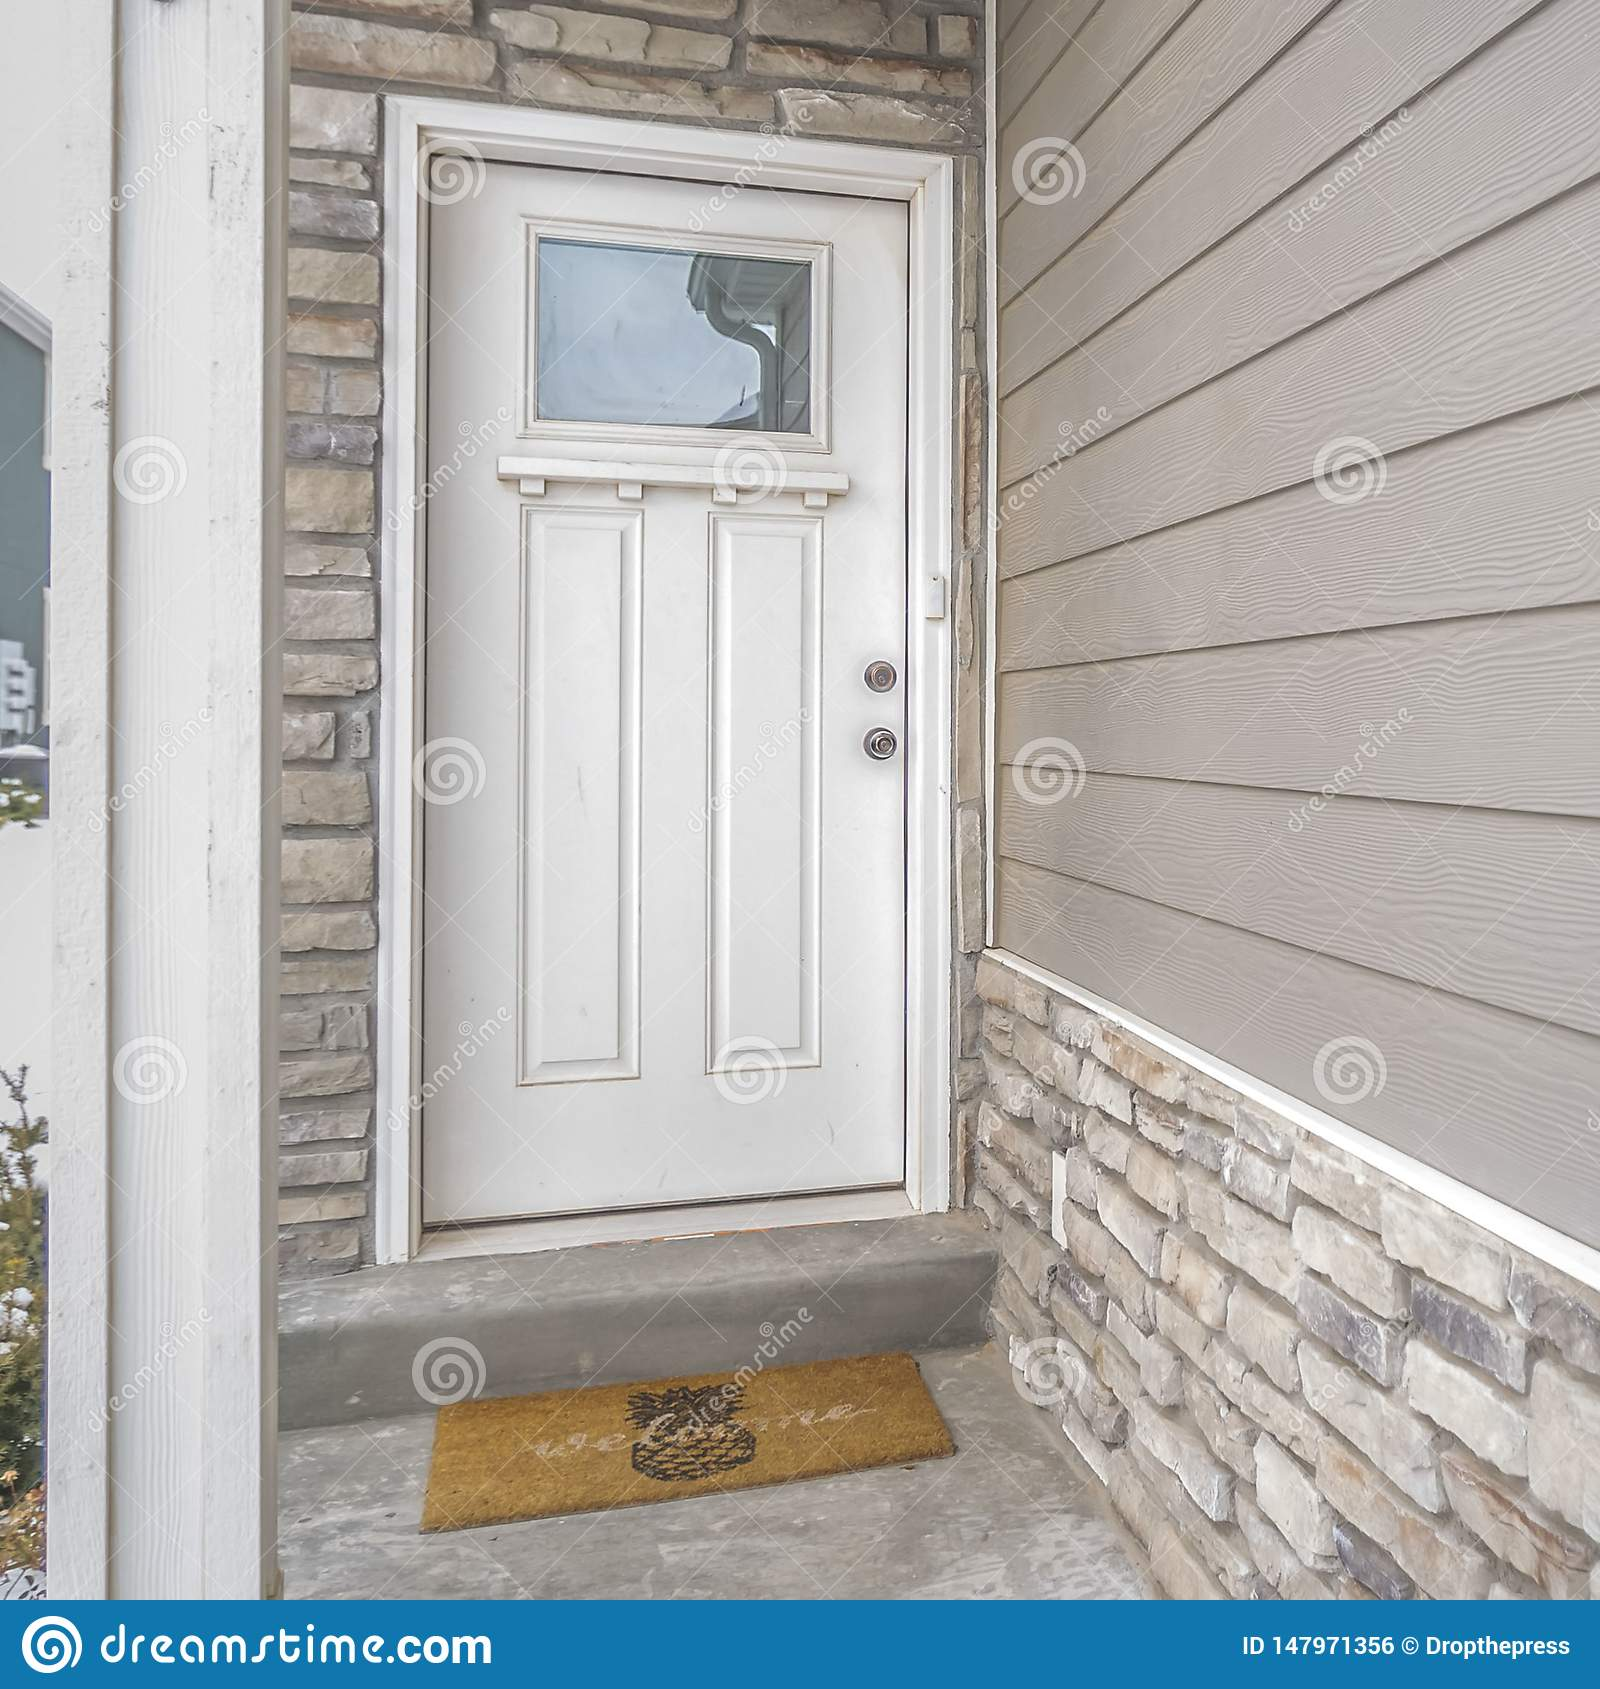 Clear Square White Wooden Front Door With Reflective Glass Panel On The Entance Of A Home Stock Photo Image Of Residential Structure 147971356